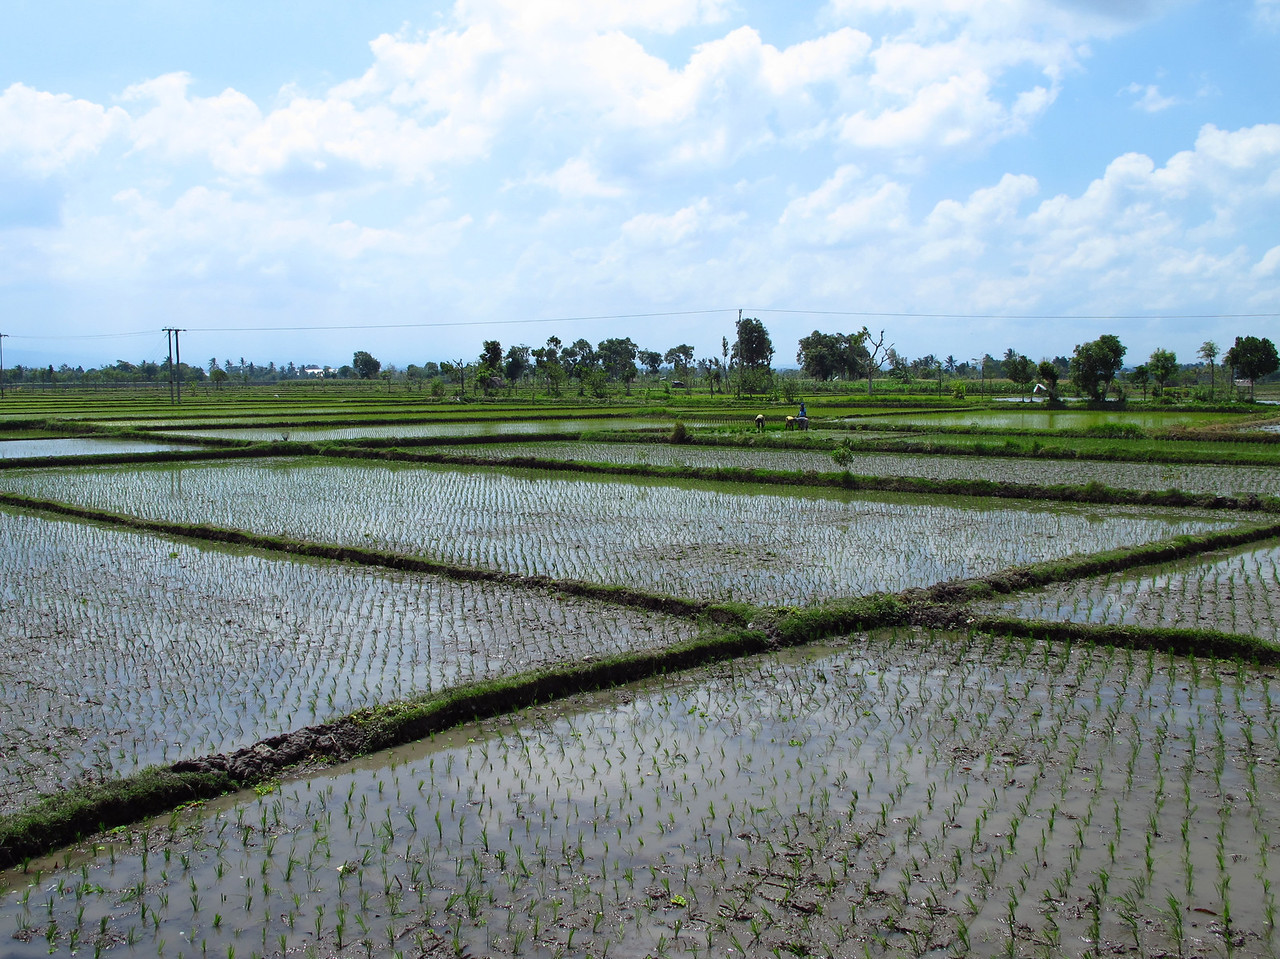 Rice is a major crop in some areas of Lombok where water is plentiful.  On Lombok The lowlands are highly cultivated. Rice, soybeans, coffee, tobacco, cotton, cinnamon, cacao, cloves, cassava, corn, coconuts, copra, bananas and vanilla are the major crops grown in the fertile soils of the island.